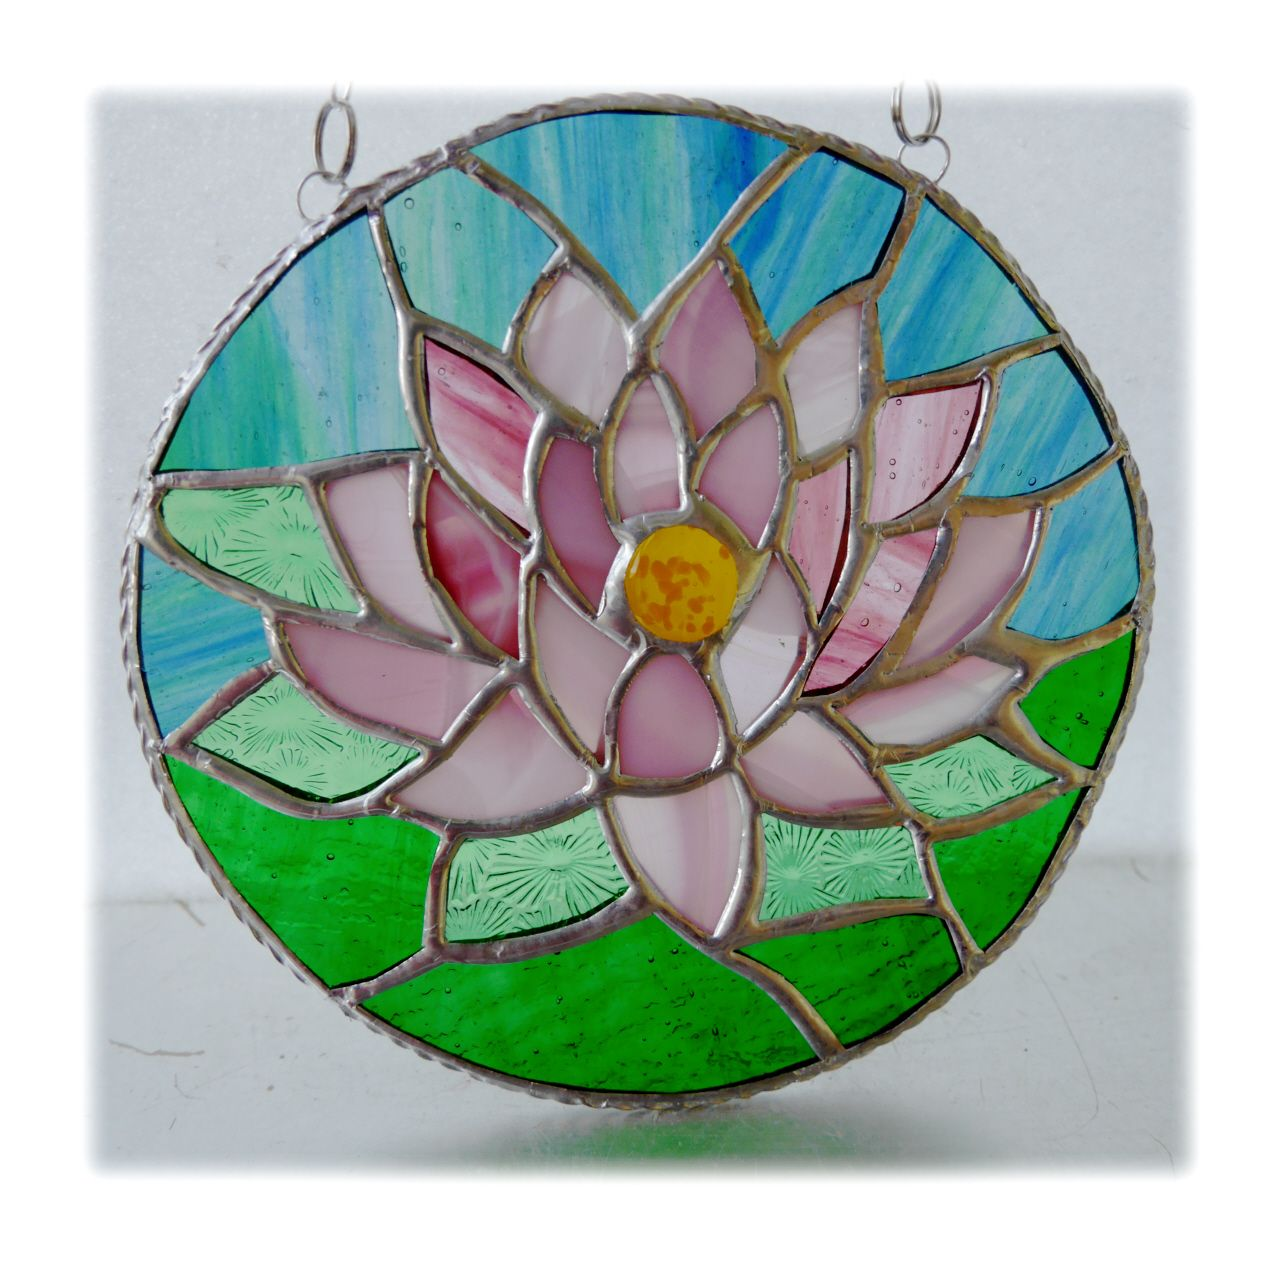 Water Lily 006 #1903 FREE 40.00